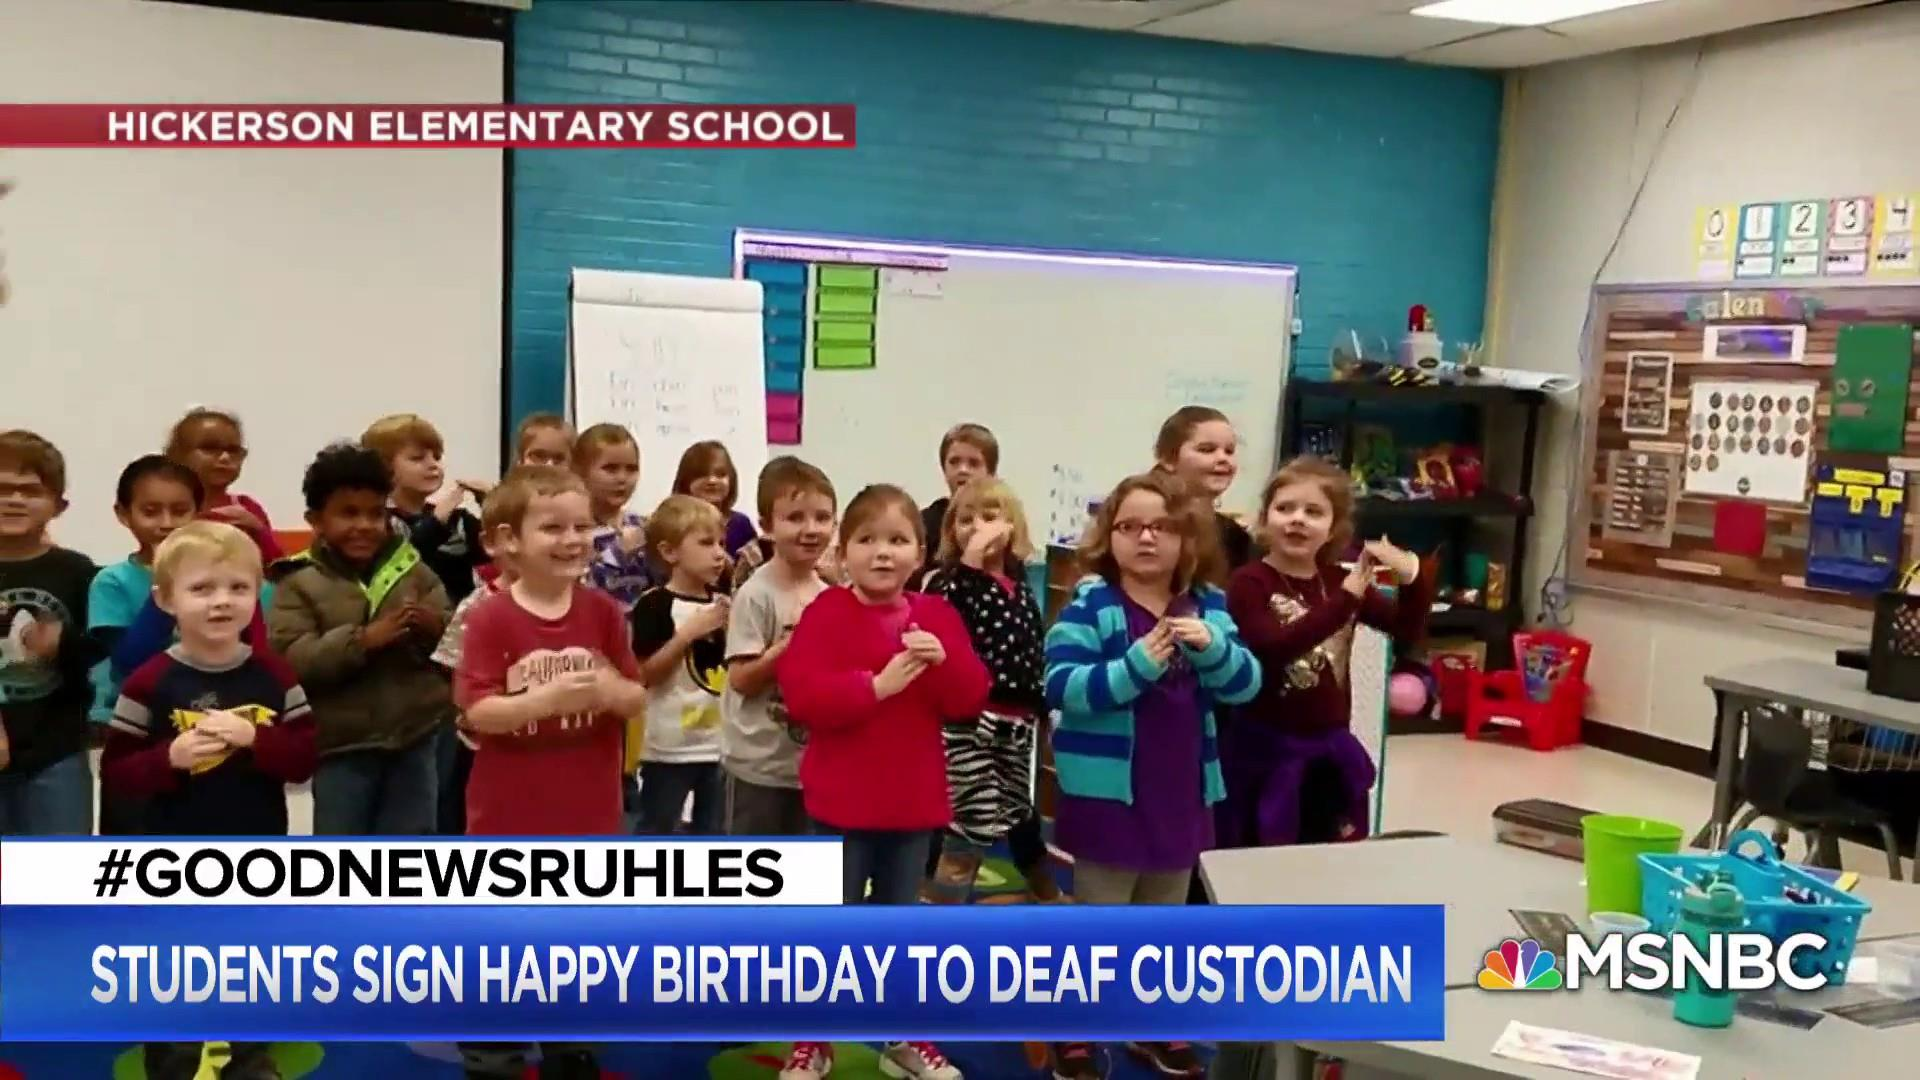 #GoodNewsRuhles: Students sing 'Happy Birthday' in sign language